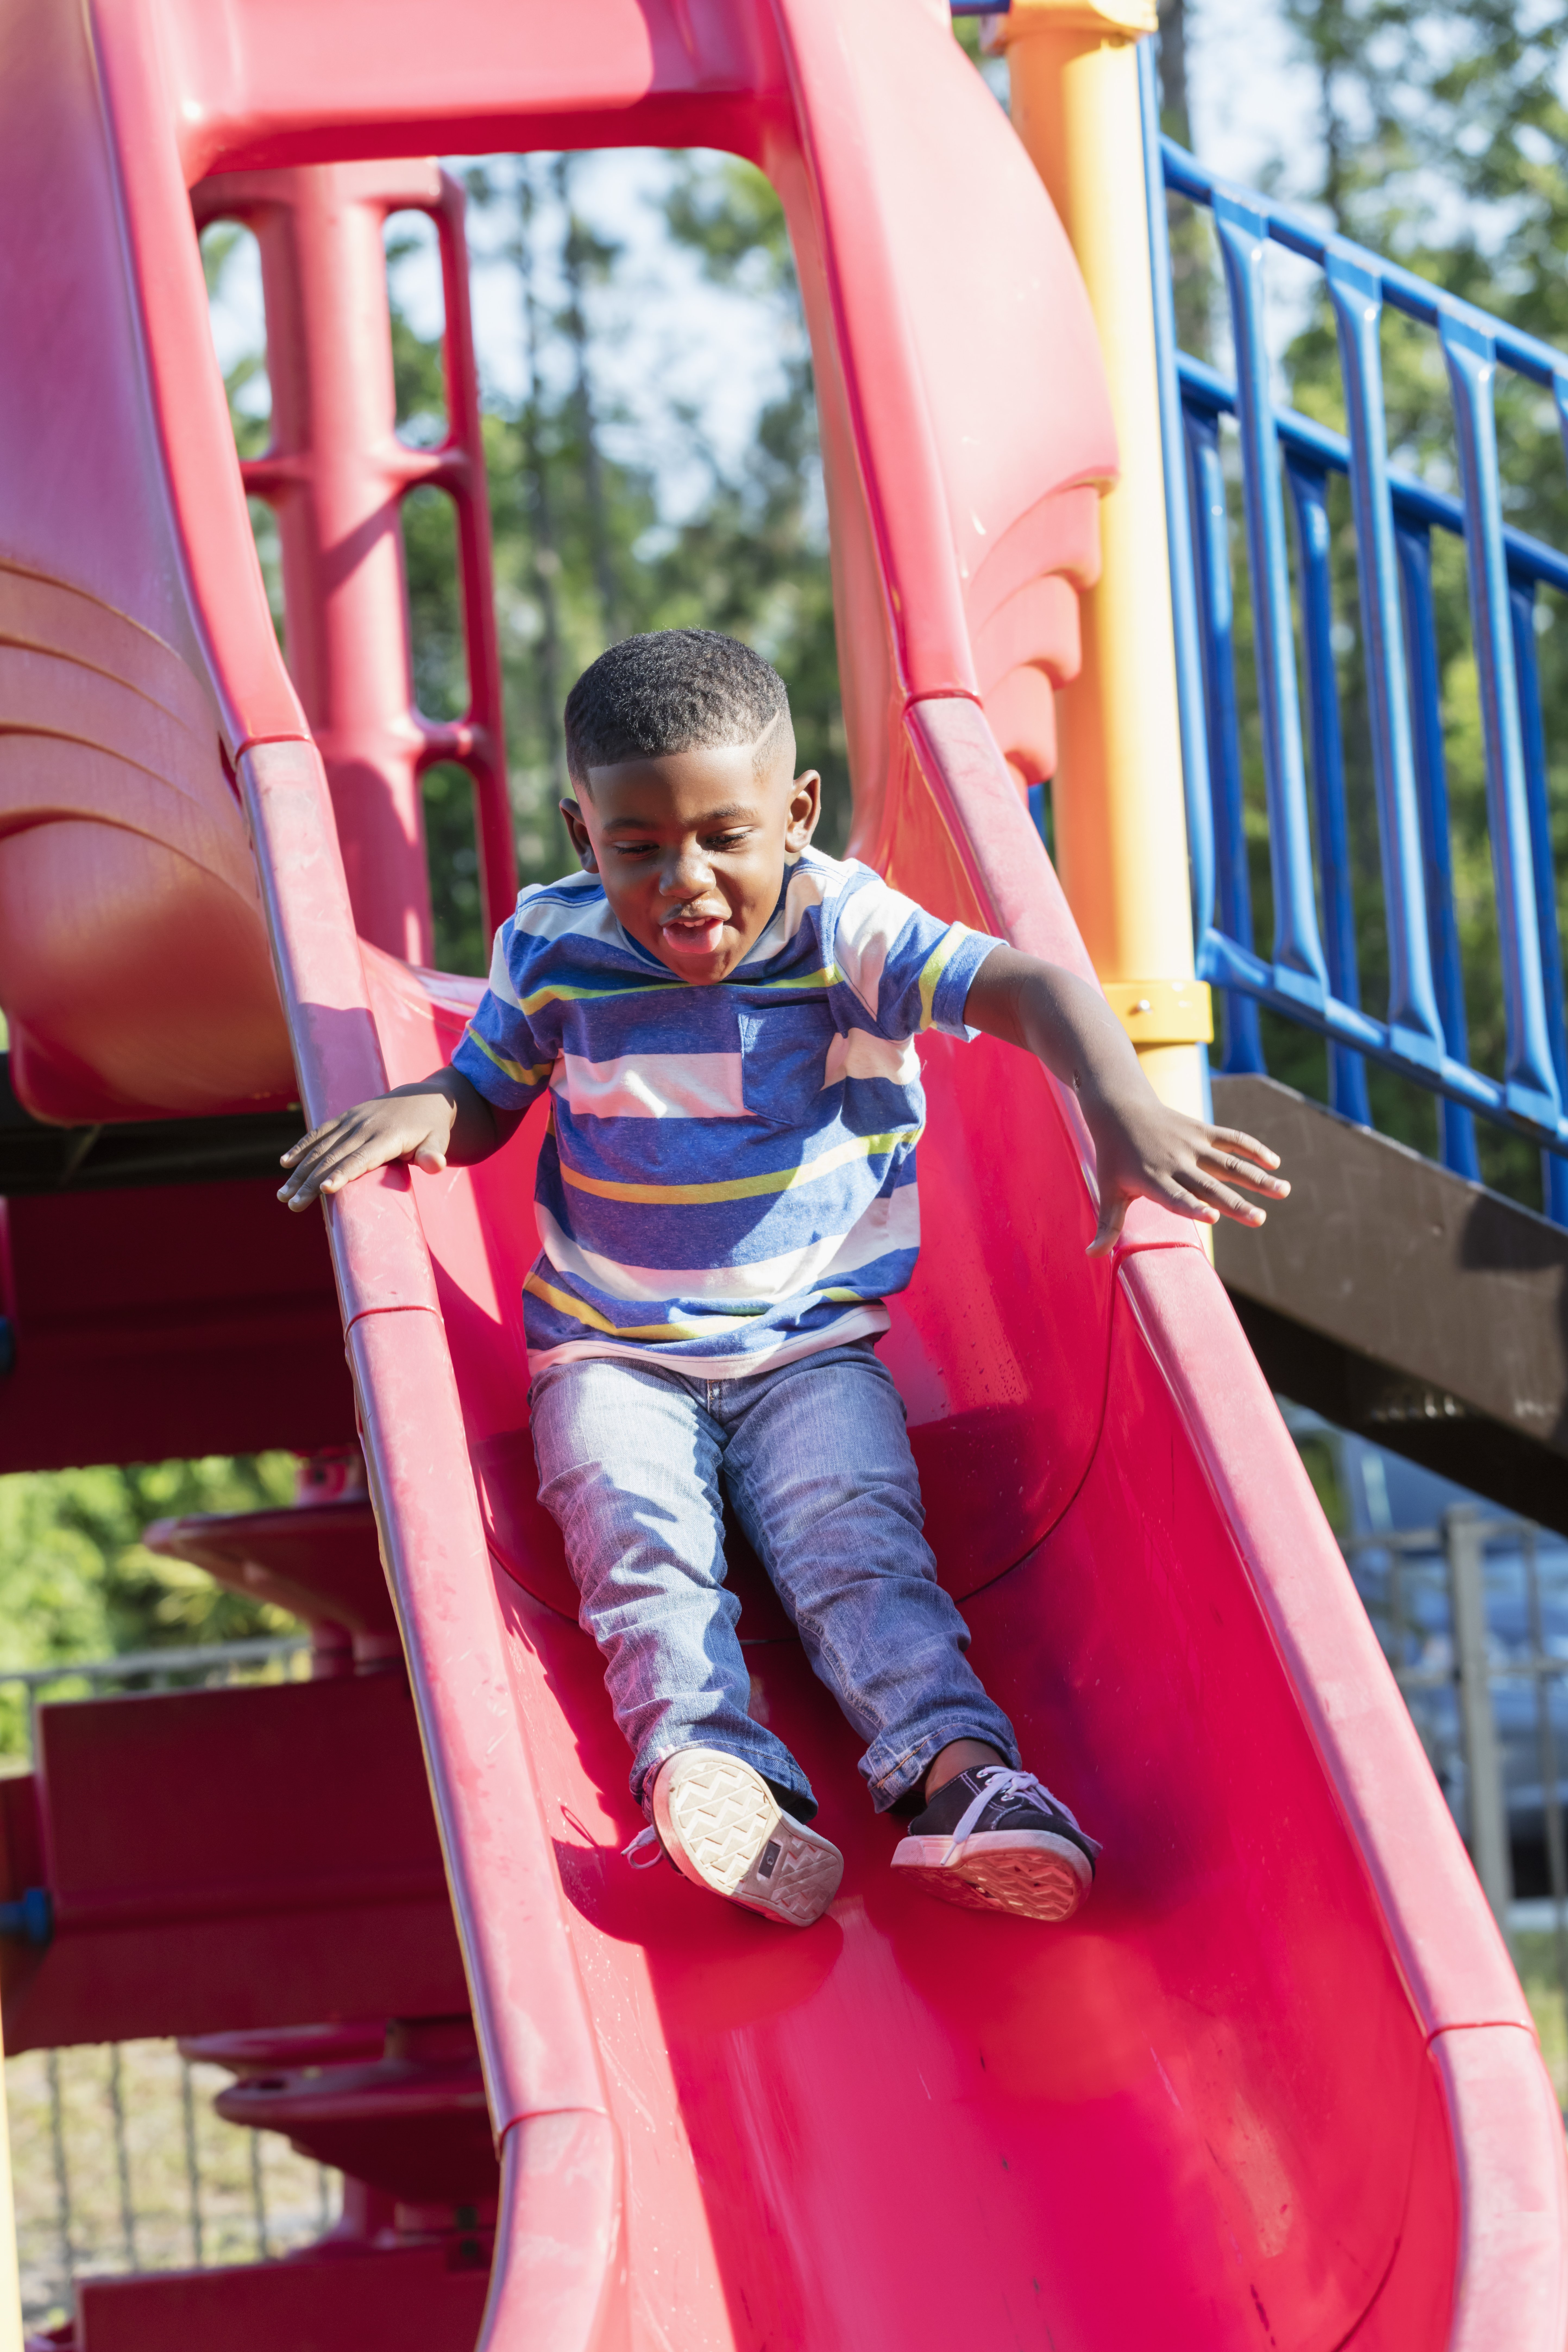 A 4 year old American boy having fun sliding down a slide on a playground at the park or schoolyard. | Photo: Getty Images